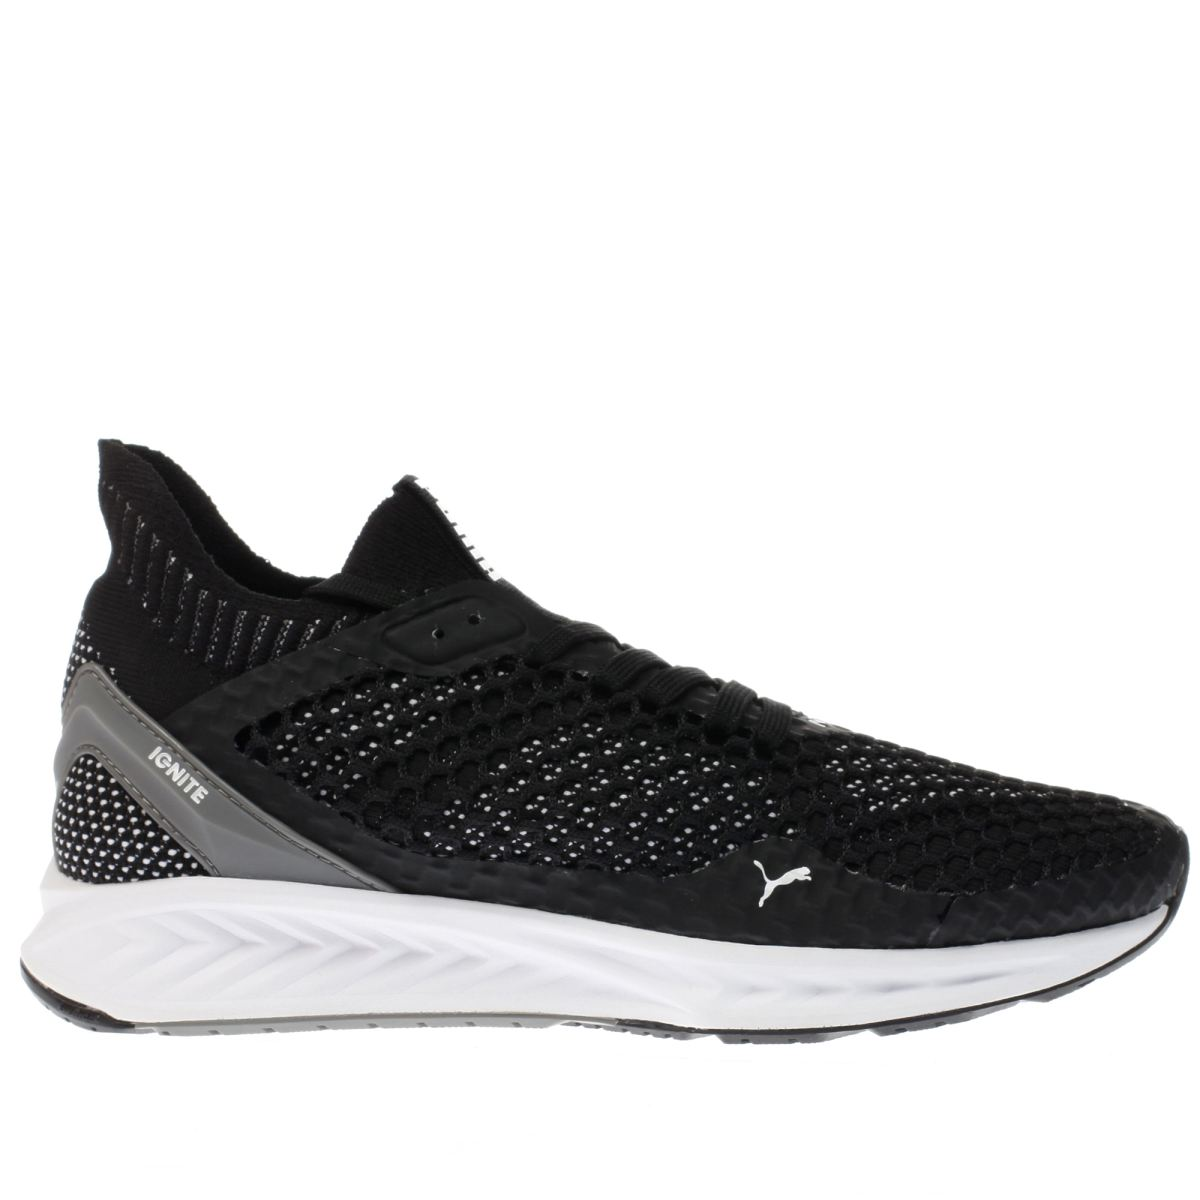 puma black & white ignite netfit trainers